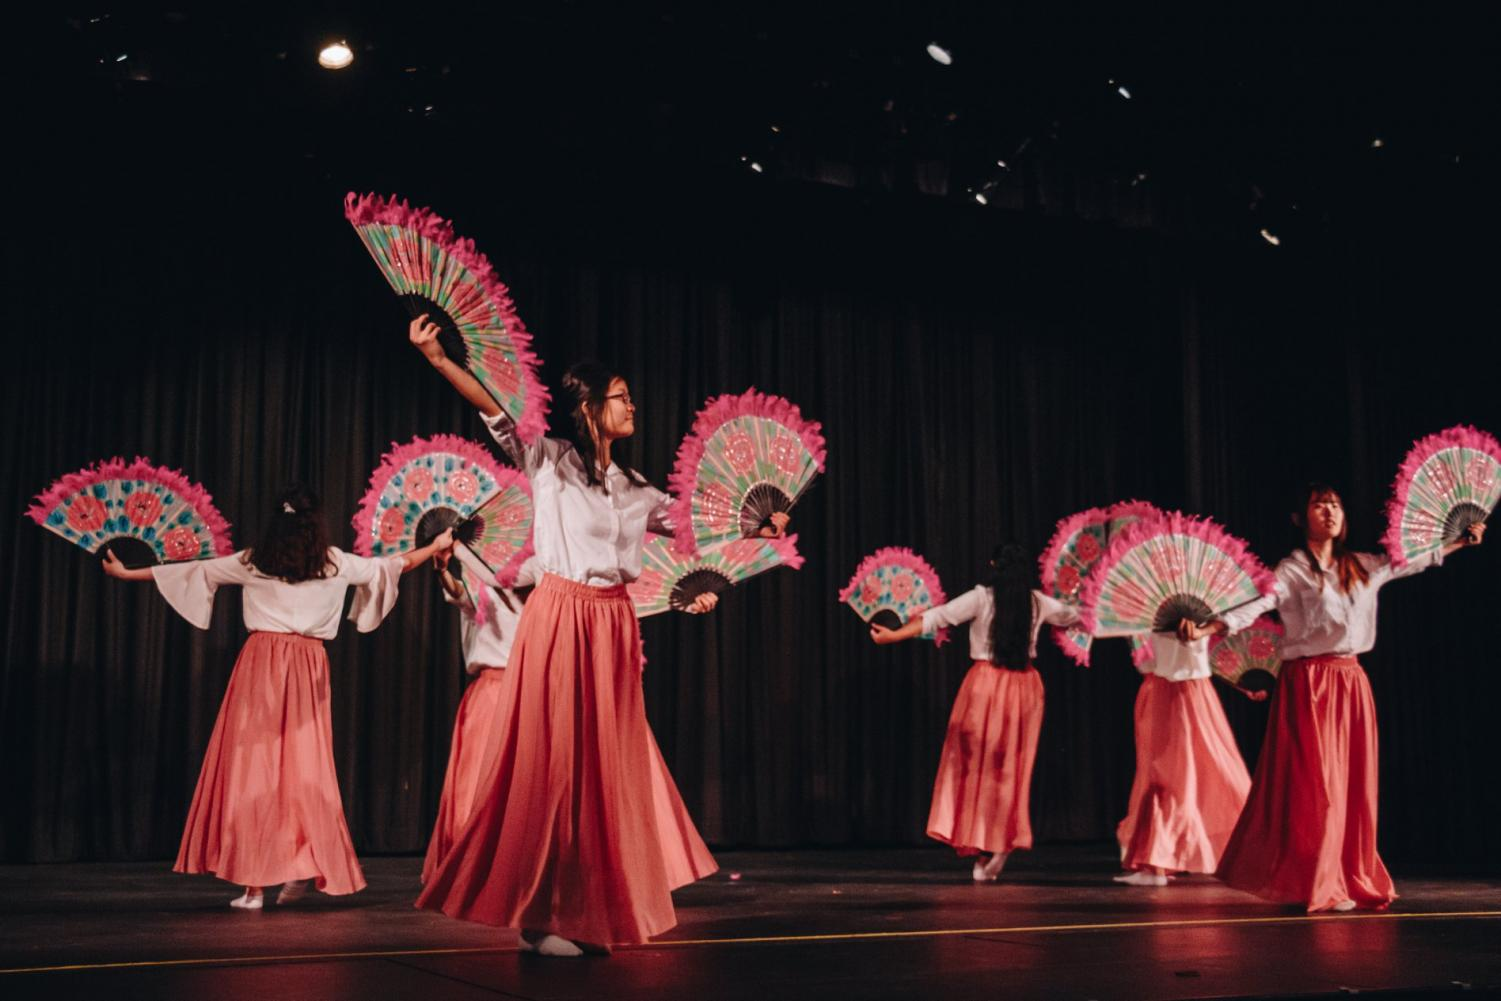 Performers dance using colorful fans in the Korean fan act. Performances like the Korean fan dance celebrate traditional aspects of Asian cultures in North High's Asian Culture Night. (Credit: Joanna Chung)